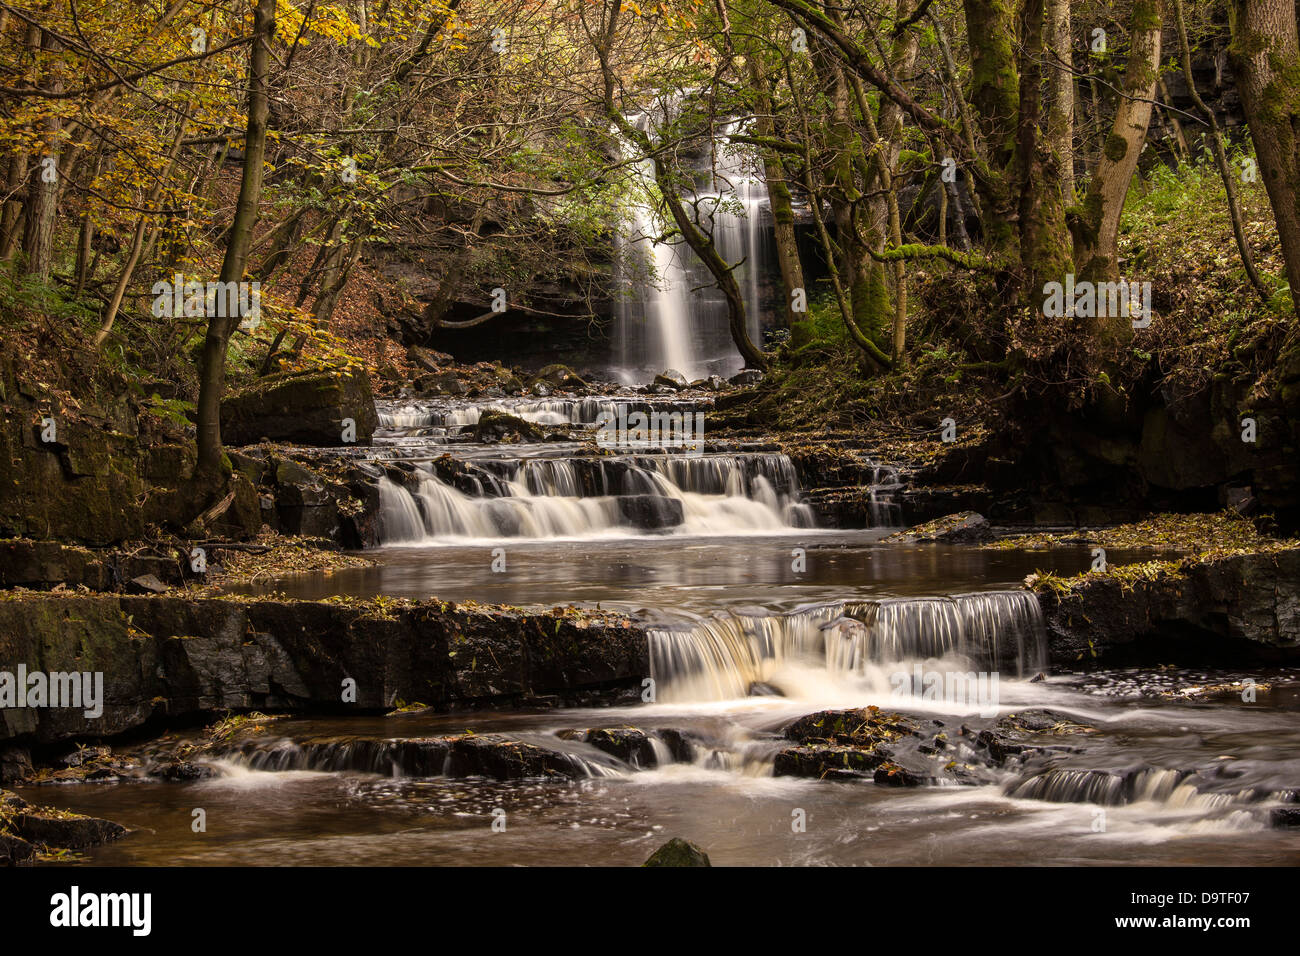 Gibsons Cave Waterfall, Bowlees, Teesdale, County Durham - Stock Image